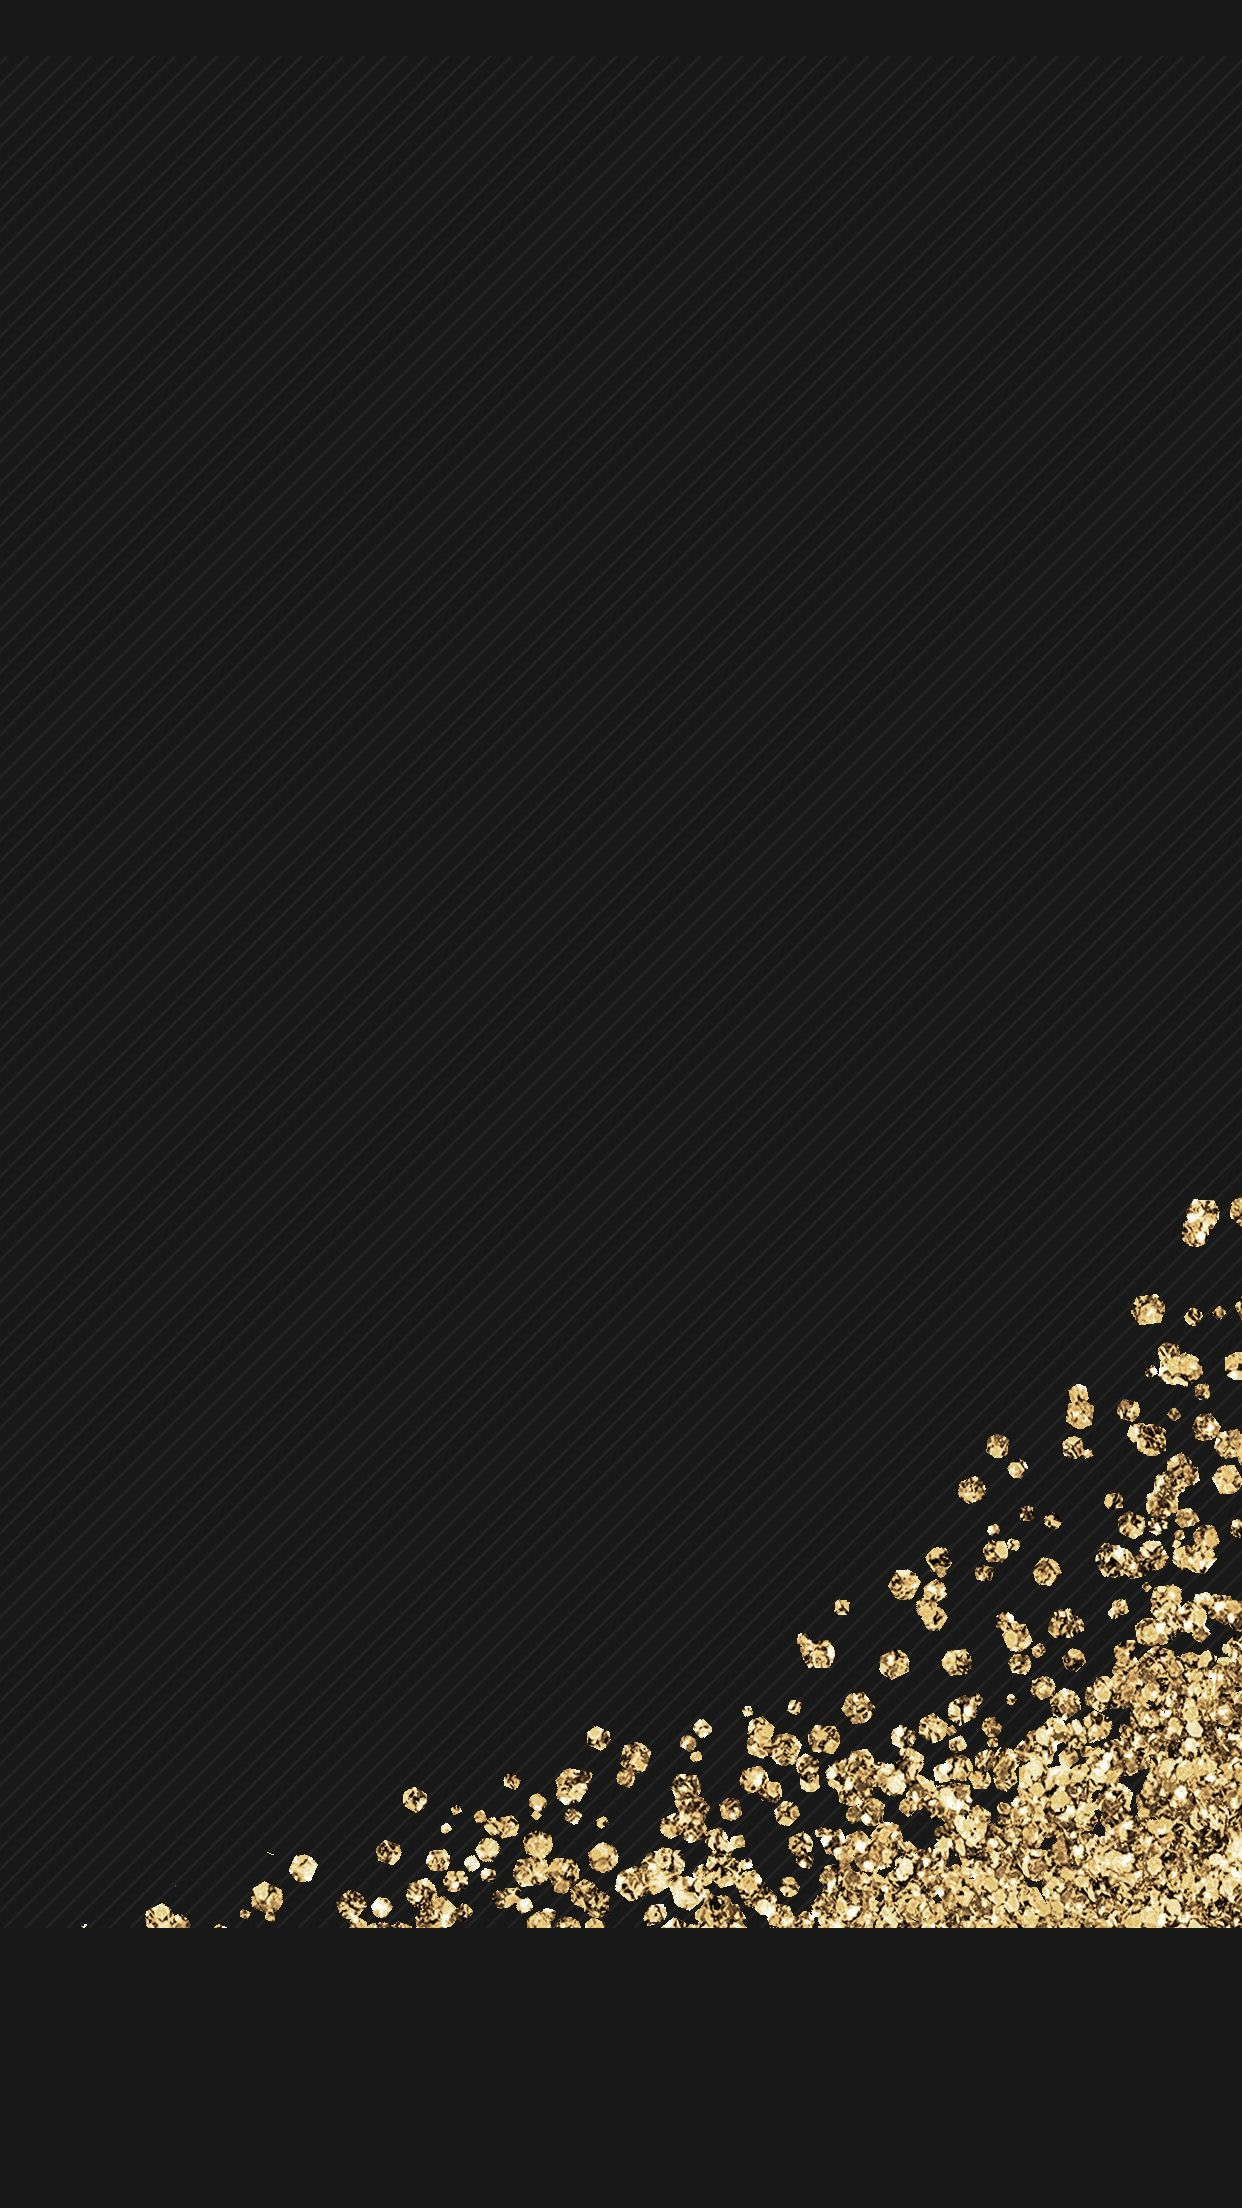 black gold glitter wallpaper background iphone android hd